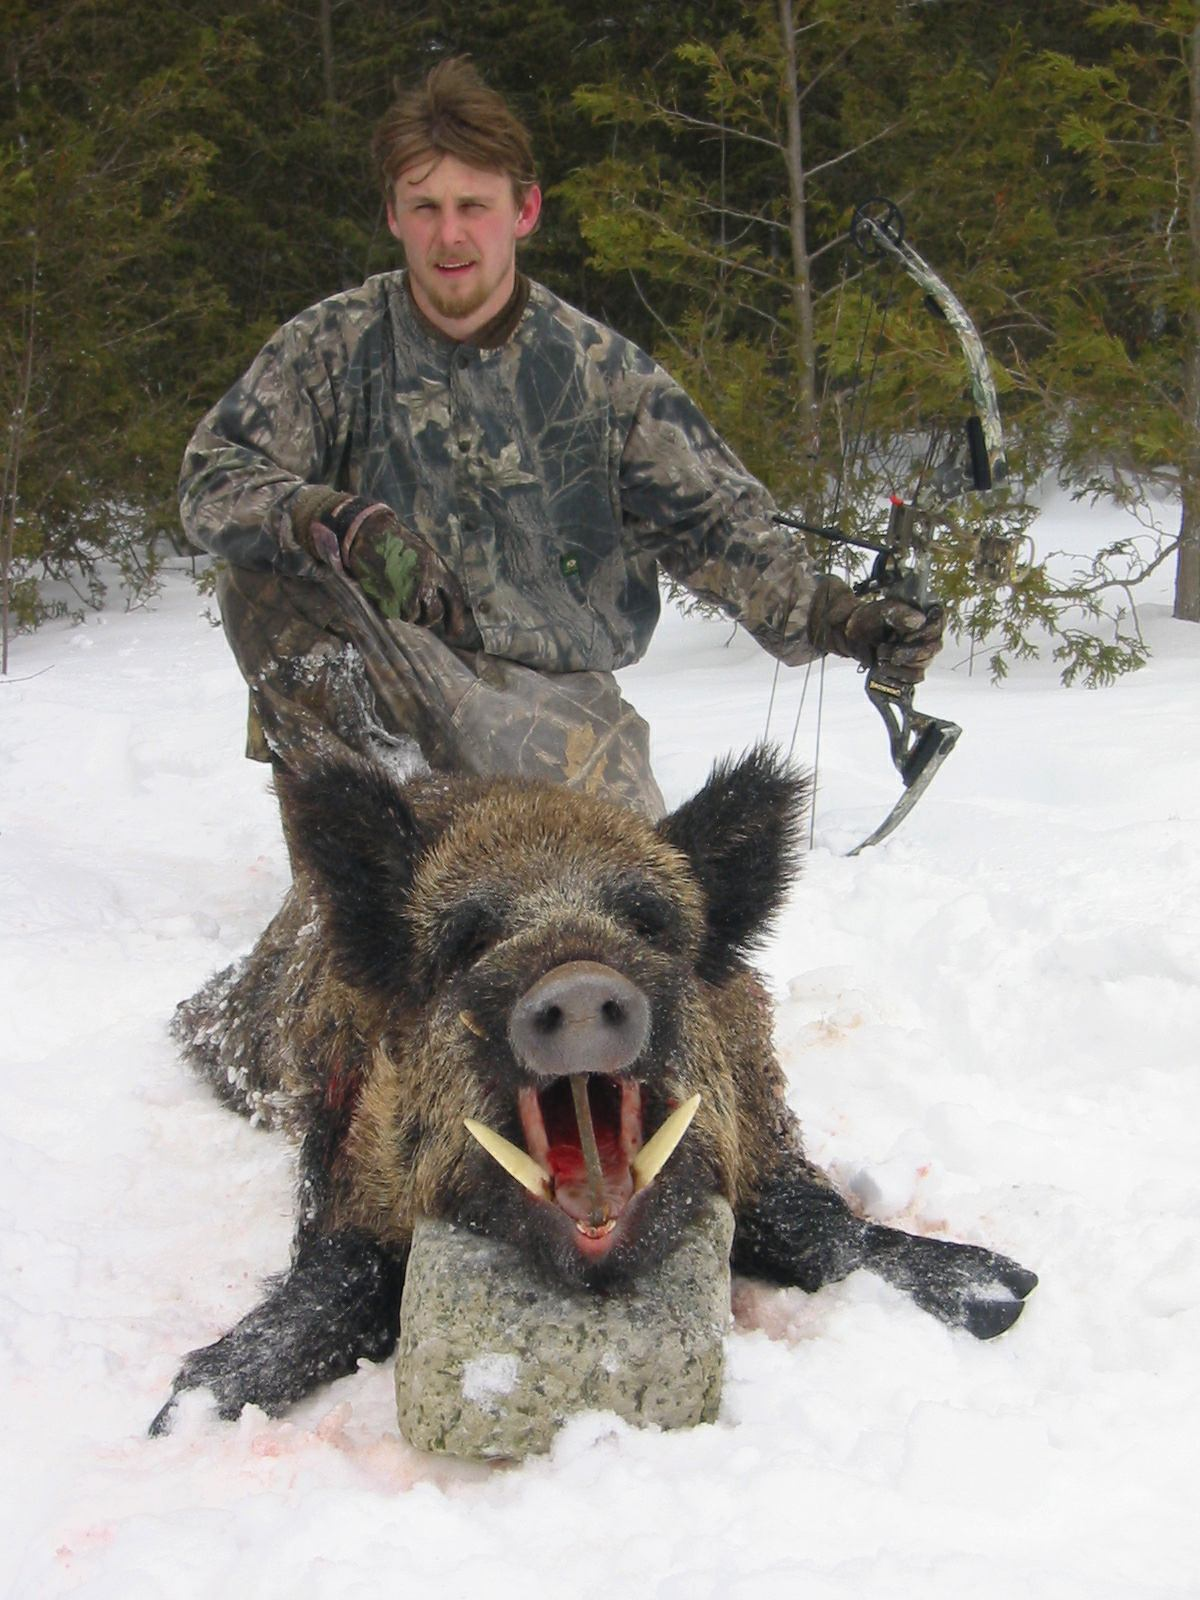 HUNTING WILD BOAR GERMAN HOGS PIGS HUNTING BIG TUSKS WILD BOAR